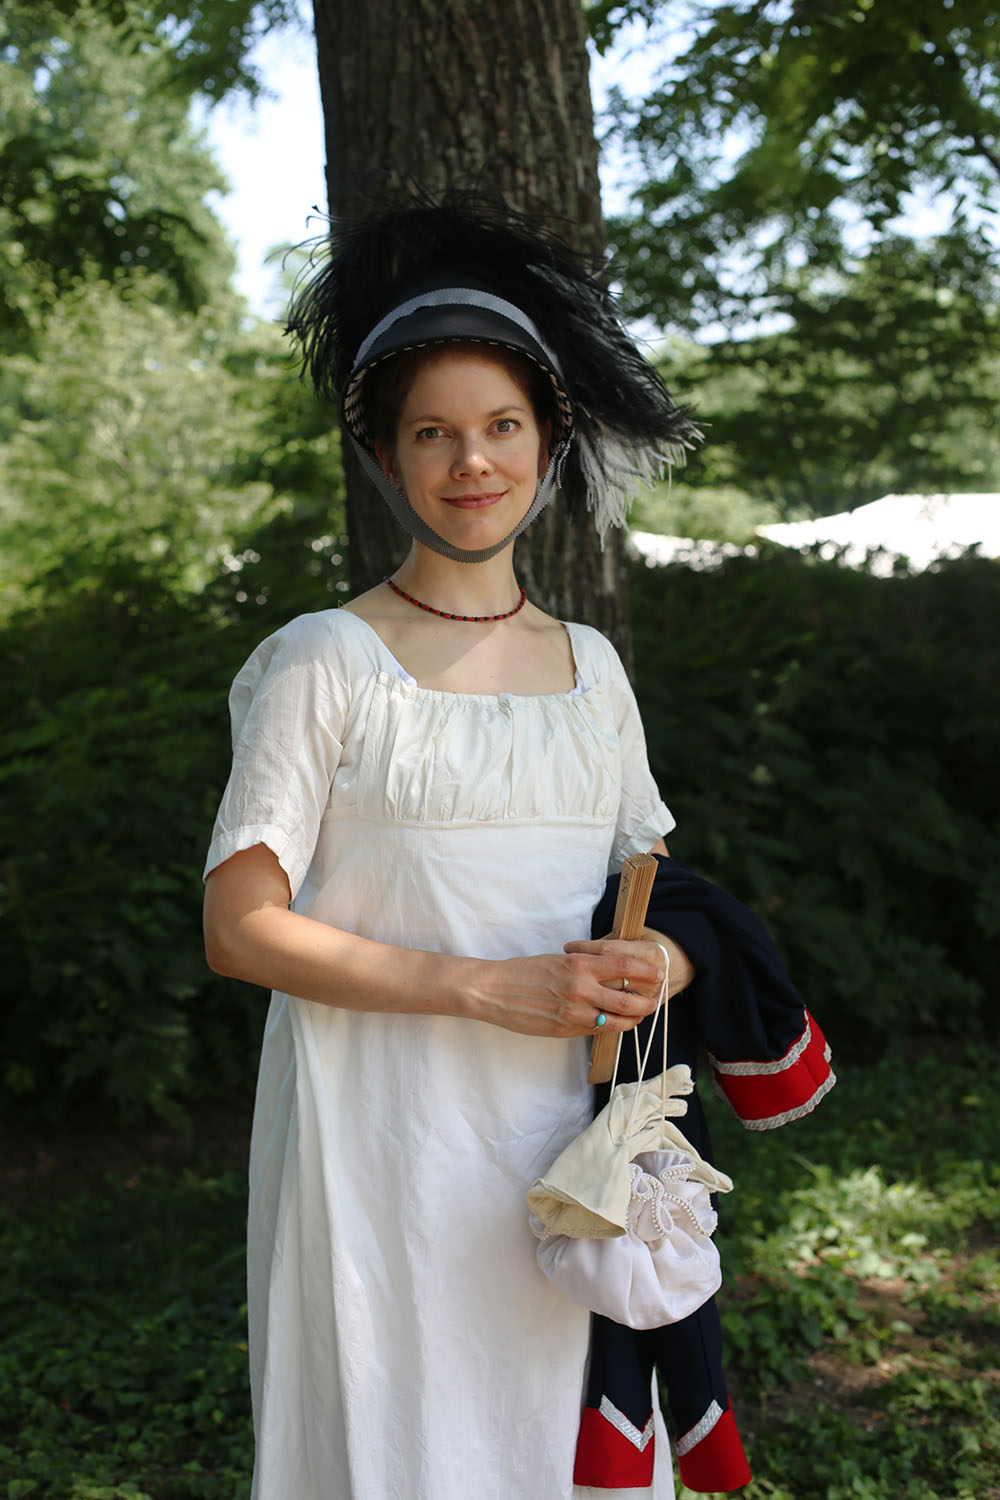 JAF+white+with+military+jacket+and+hat+1 - Jane Austen Pageant at Locust Grove 2018